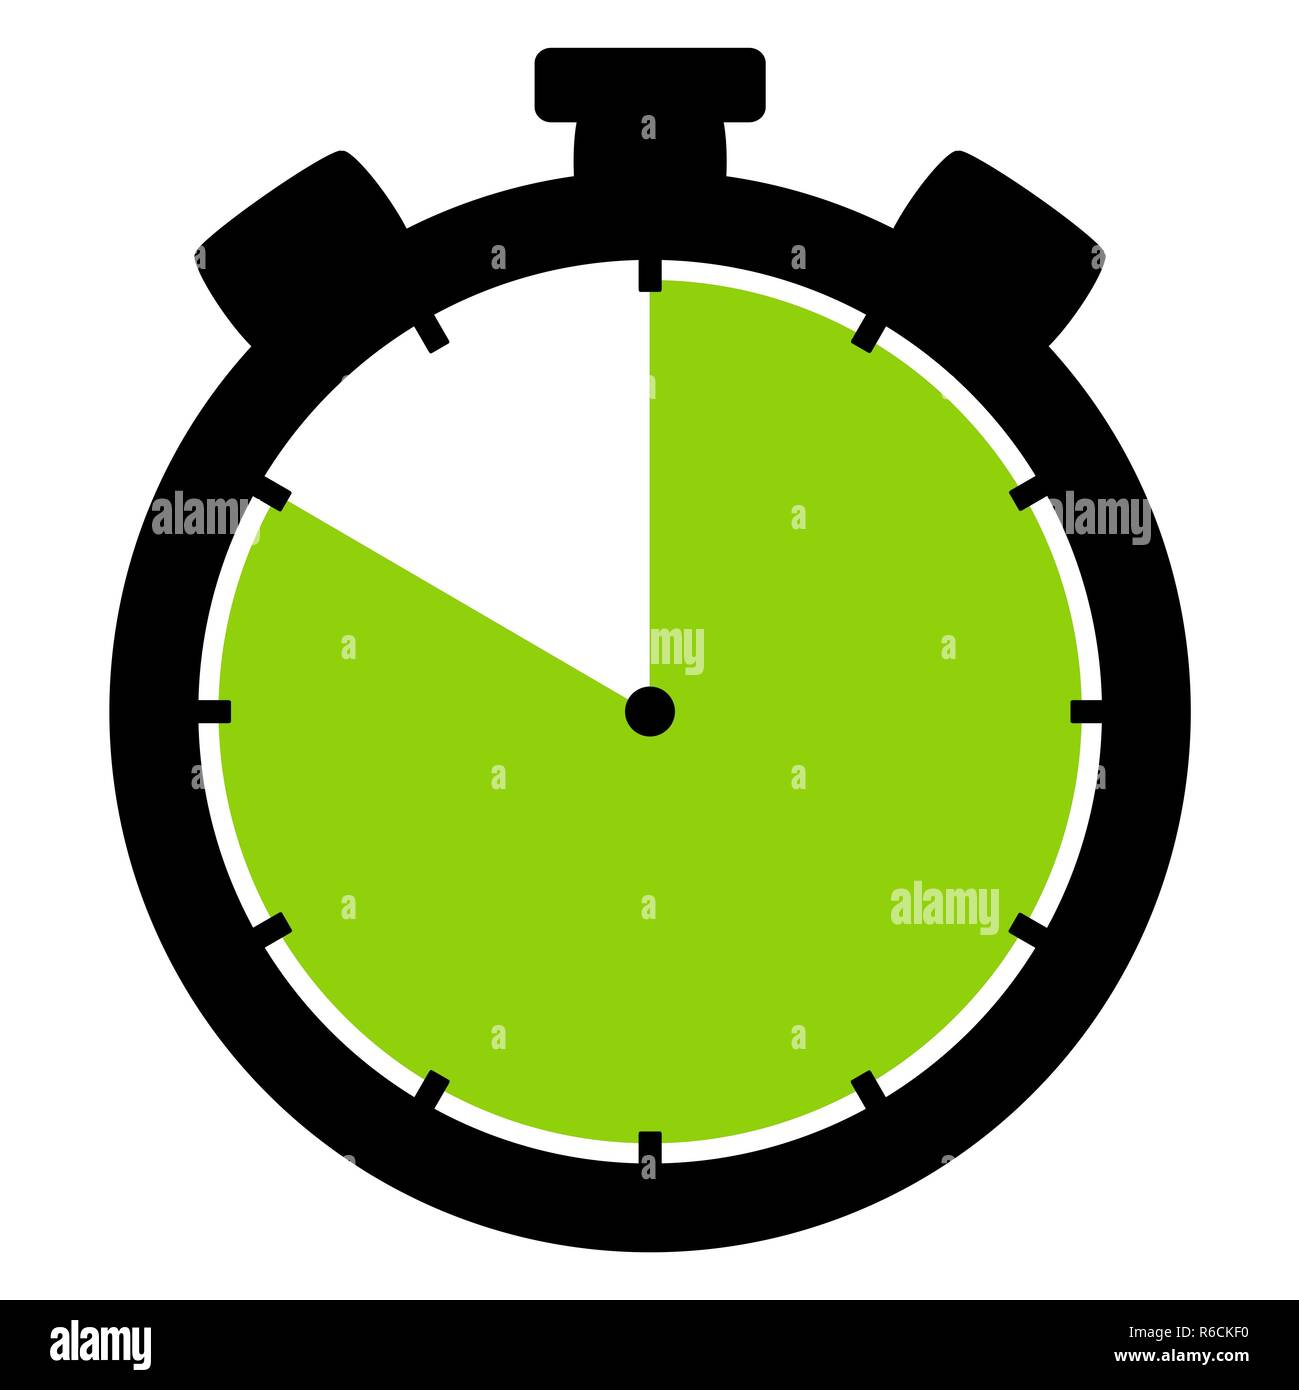 stopwatch icon: 50 minutes 50 seconds or 10 hours - Stock Image